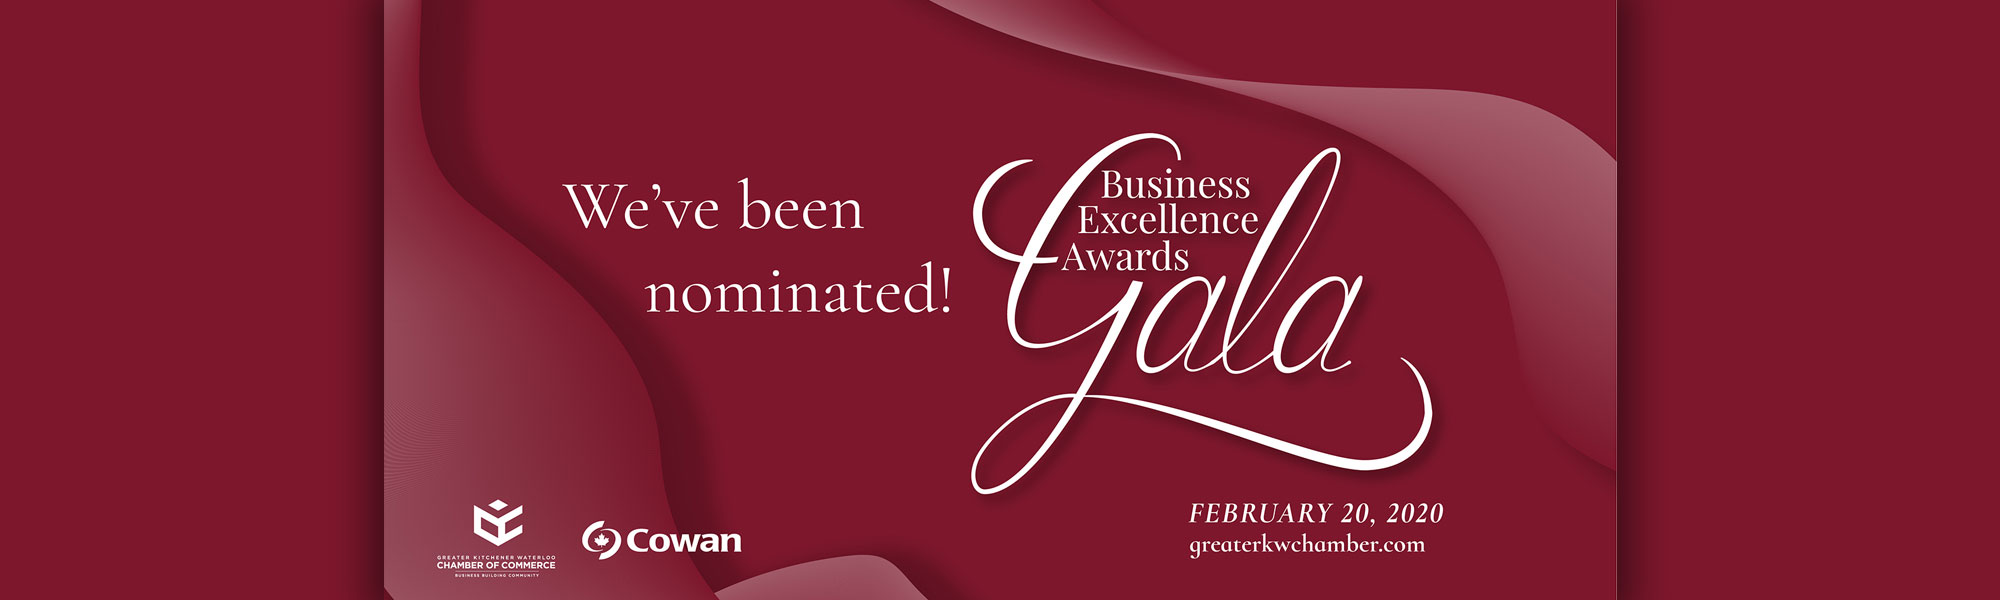 Chamber of Commerce Business Excellence Award Nomination